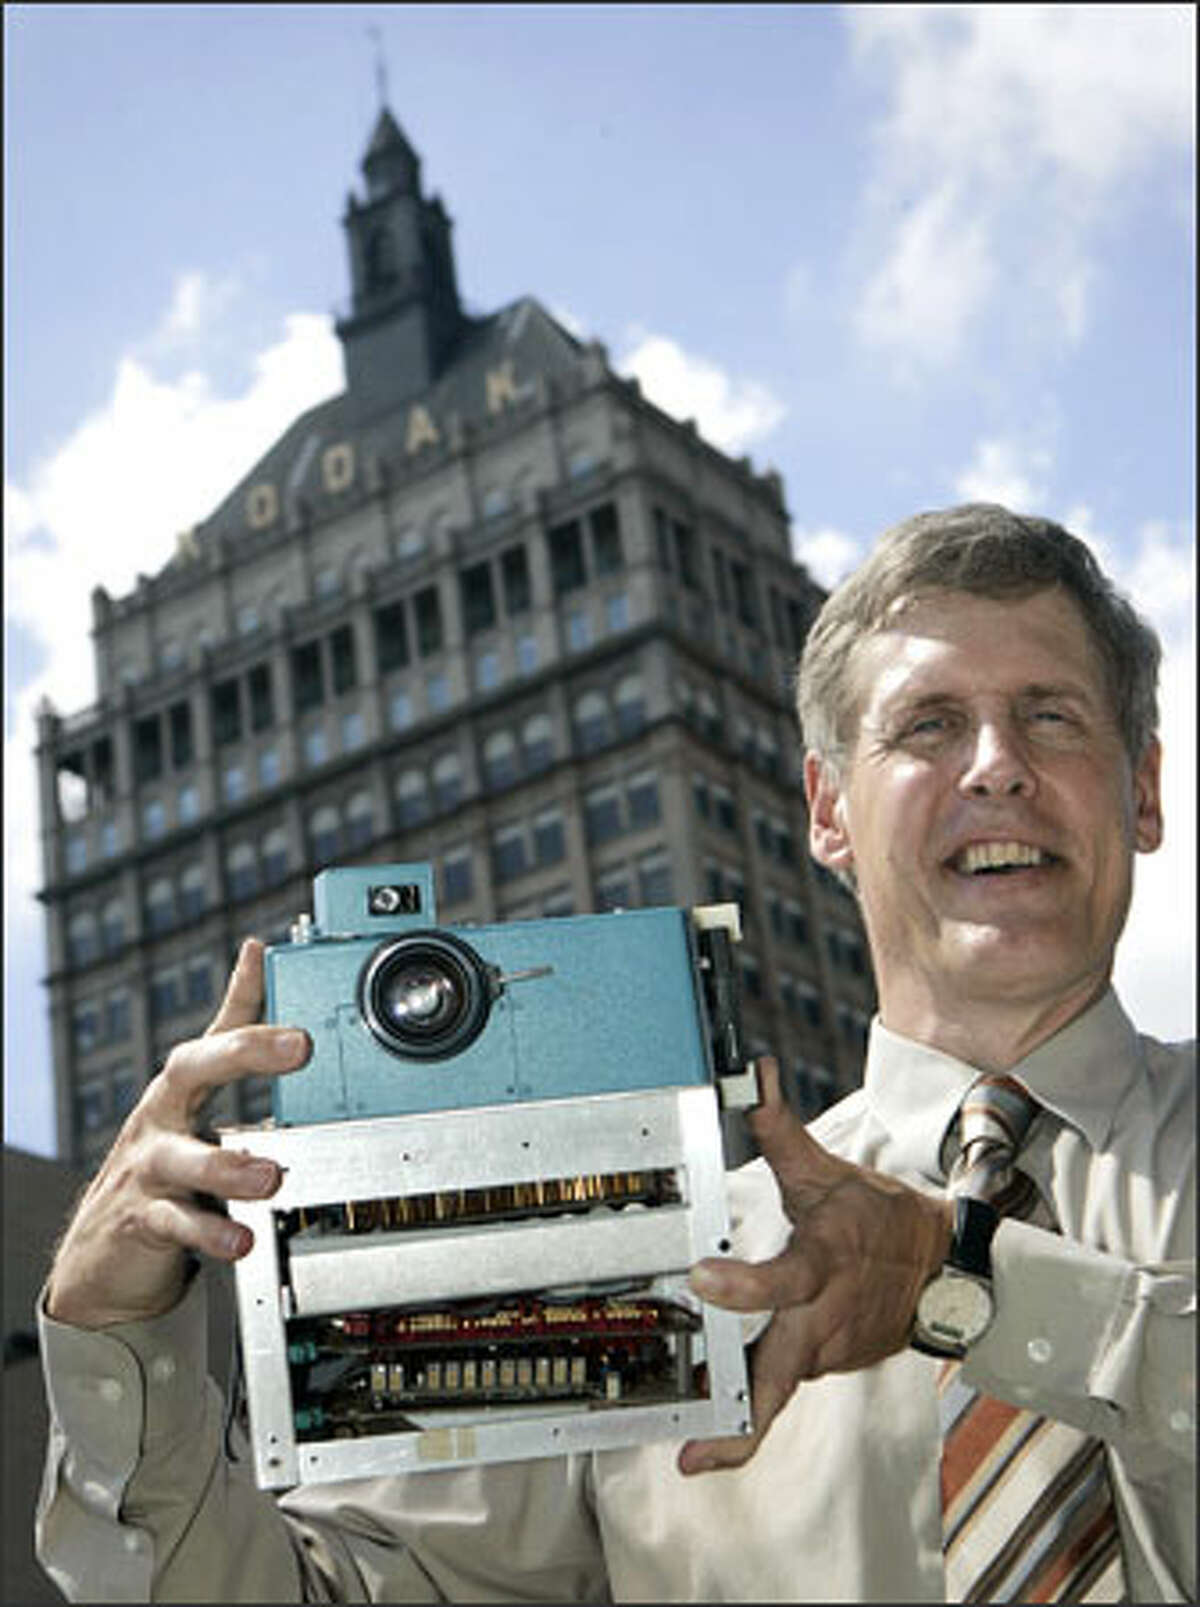 Steven Sasson holds the prototype digital camera he built in 1975 at the Eastman Kodak Co. headquarters in Rochester, N.Y. It recorded a black-and-white image on a digital cassette tape.